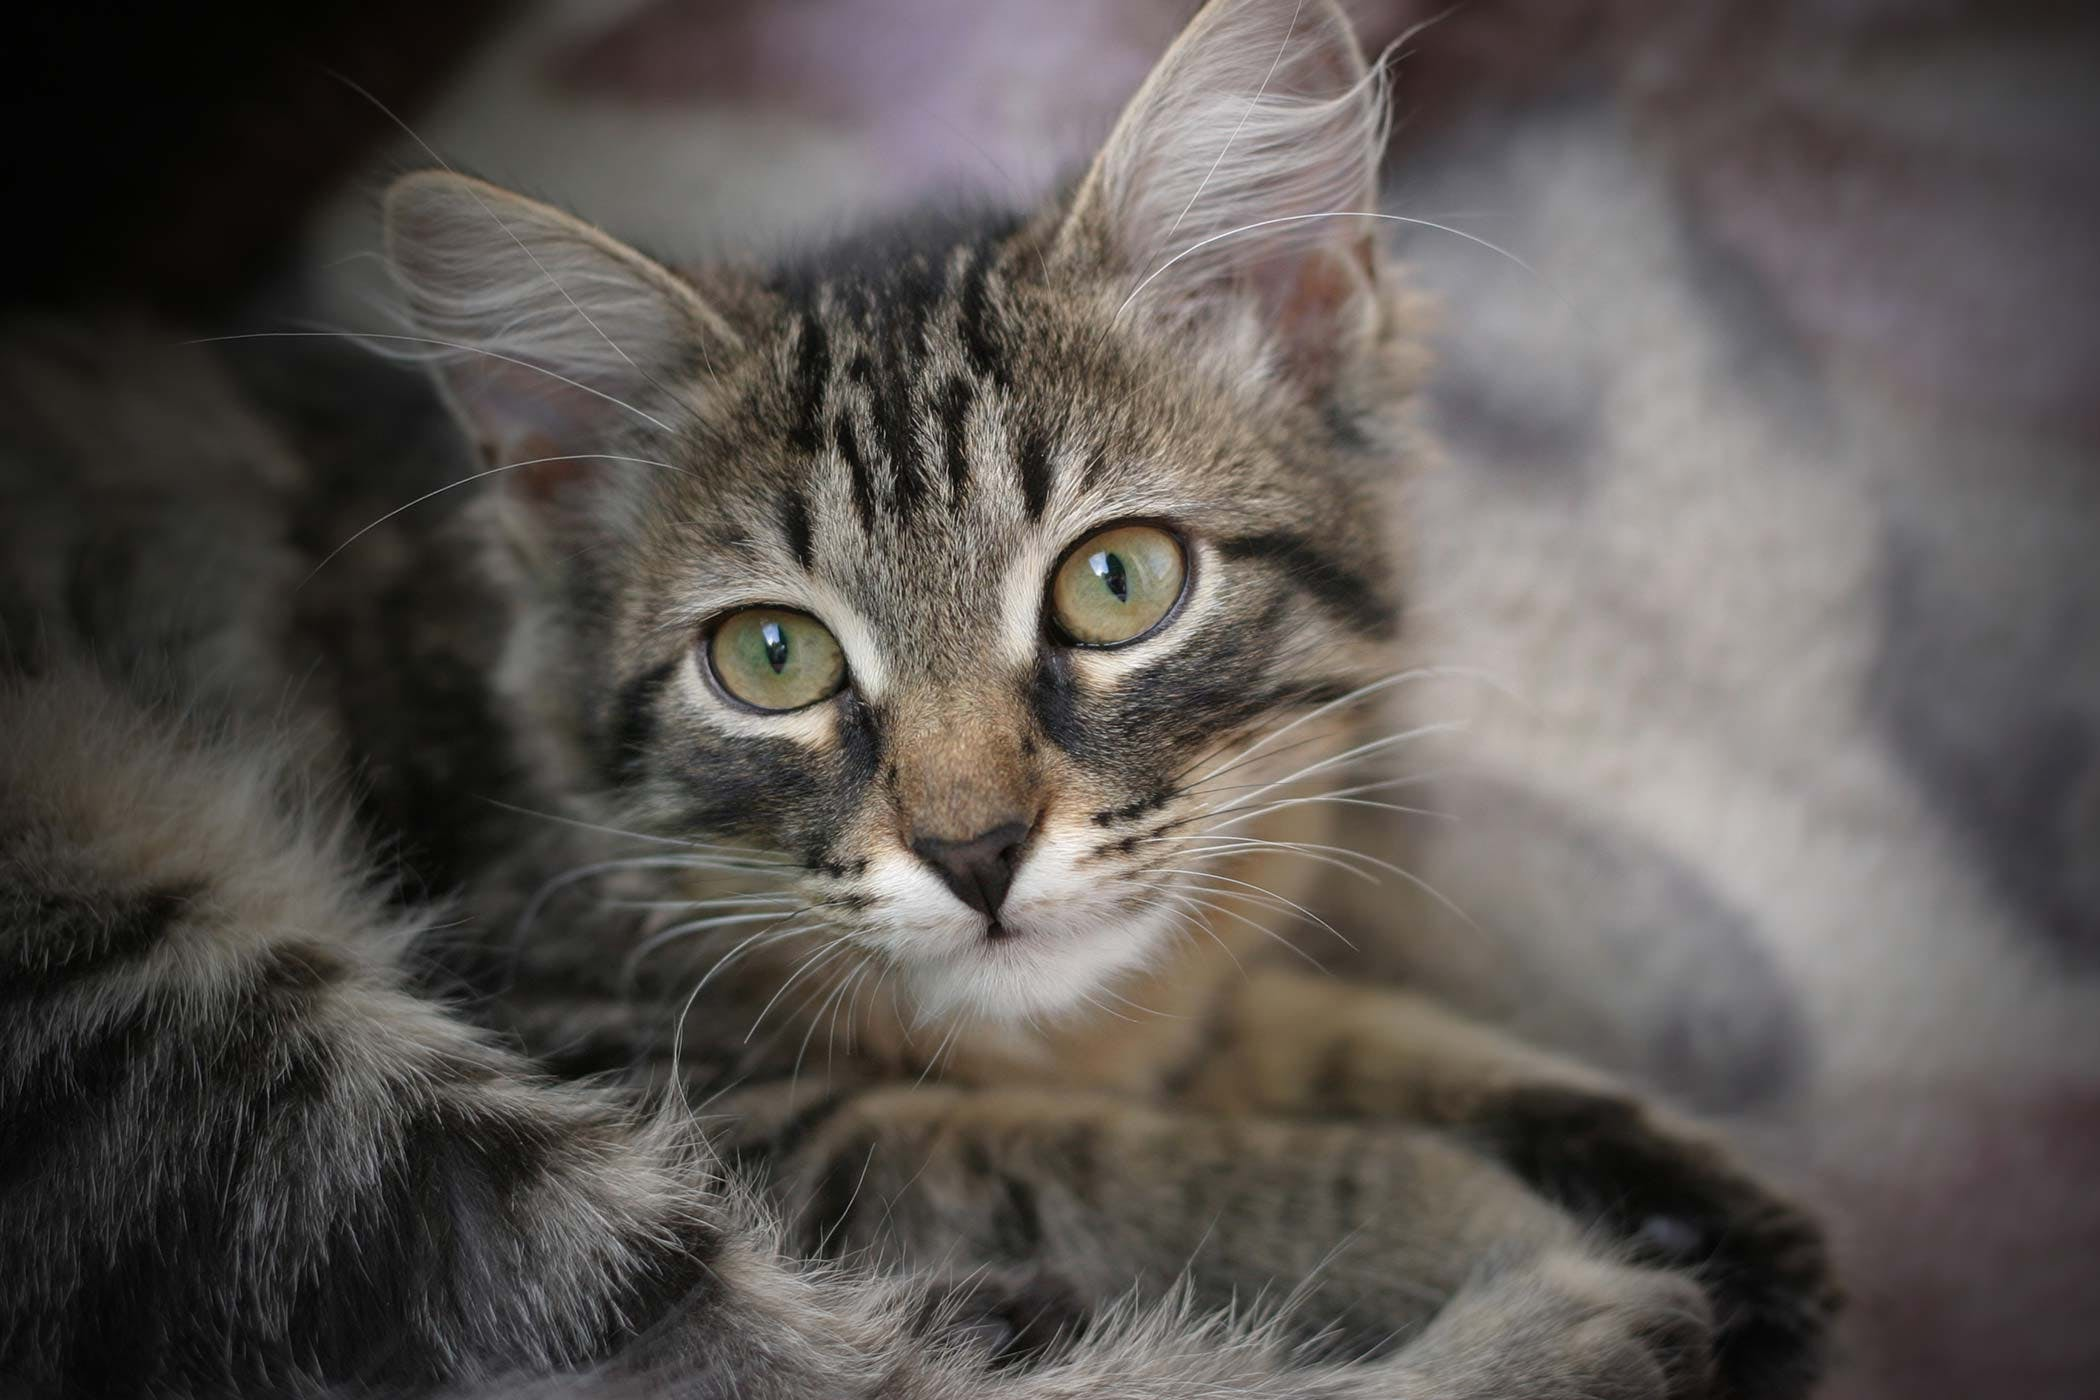 The cat has diarrhea. What to do and what means to use in such a case